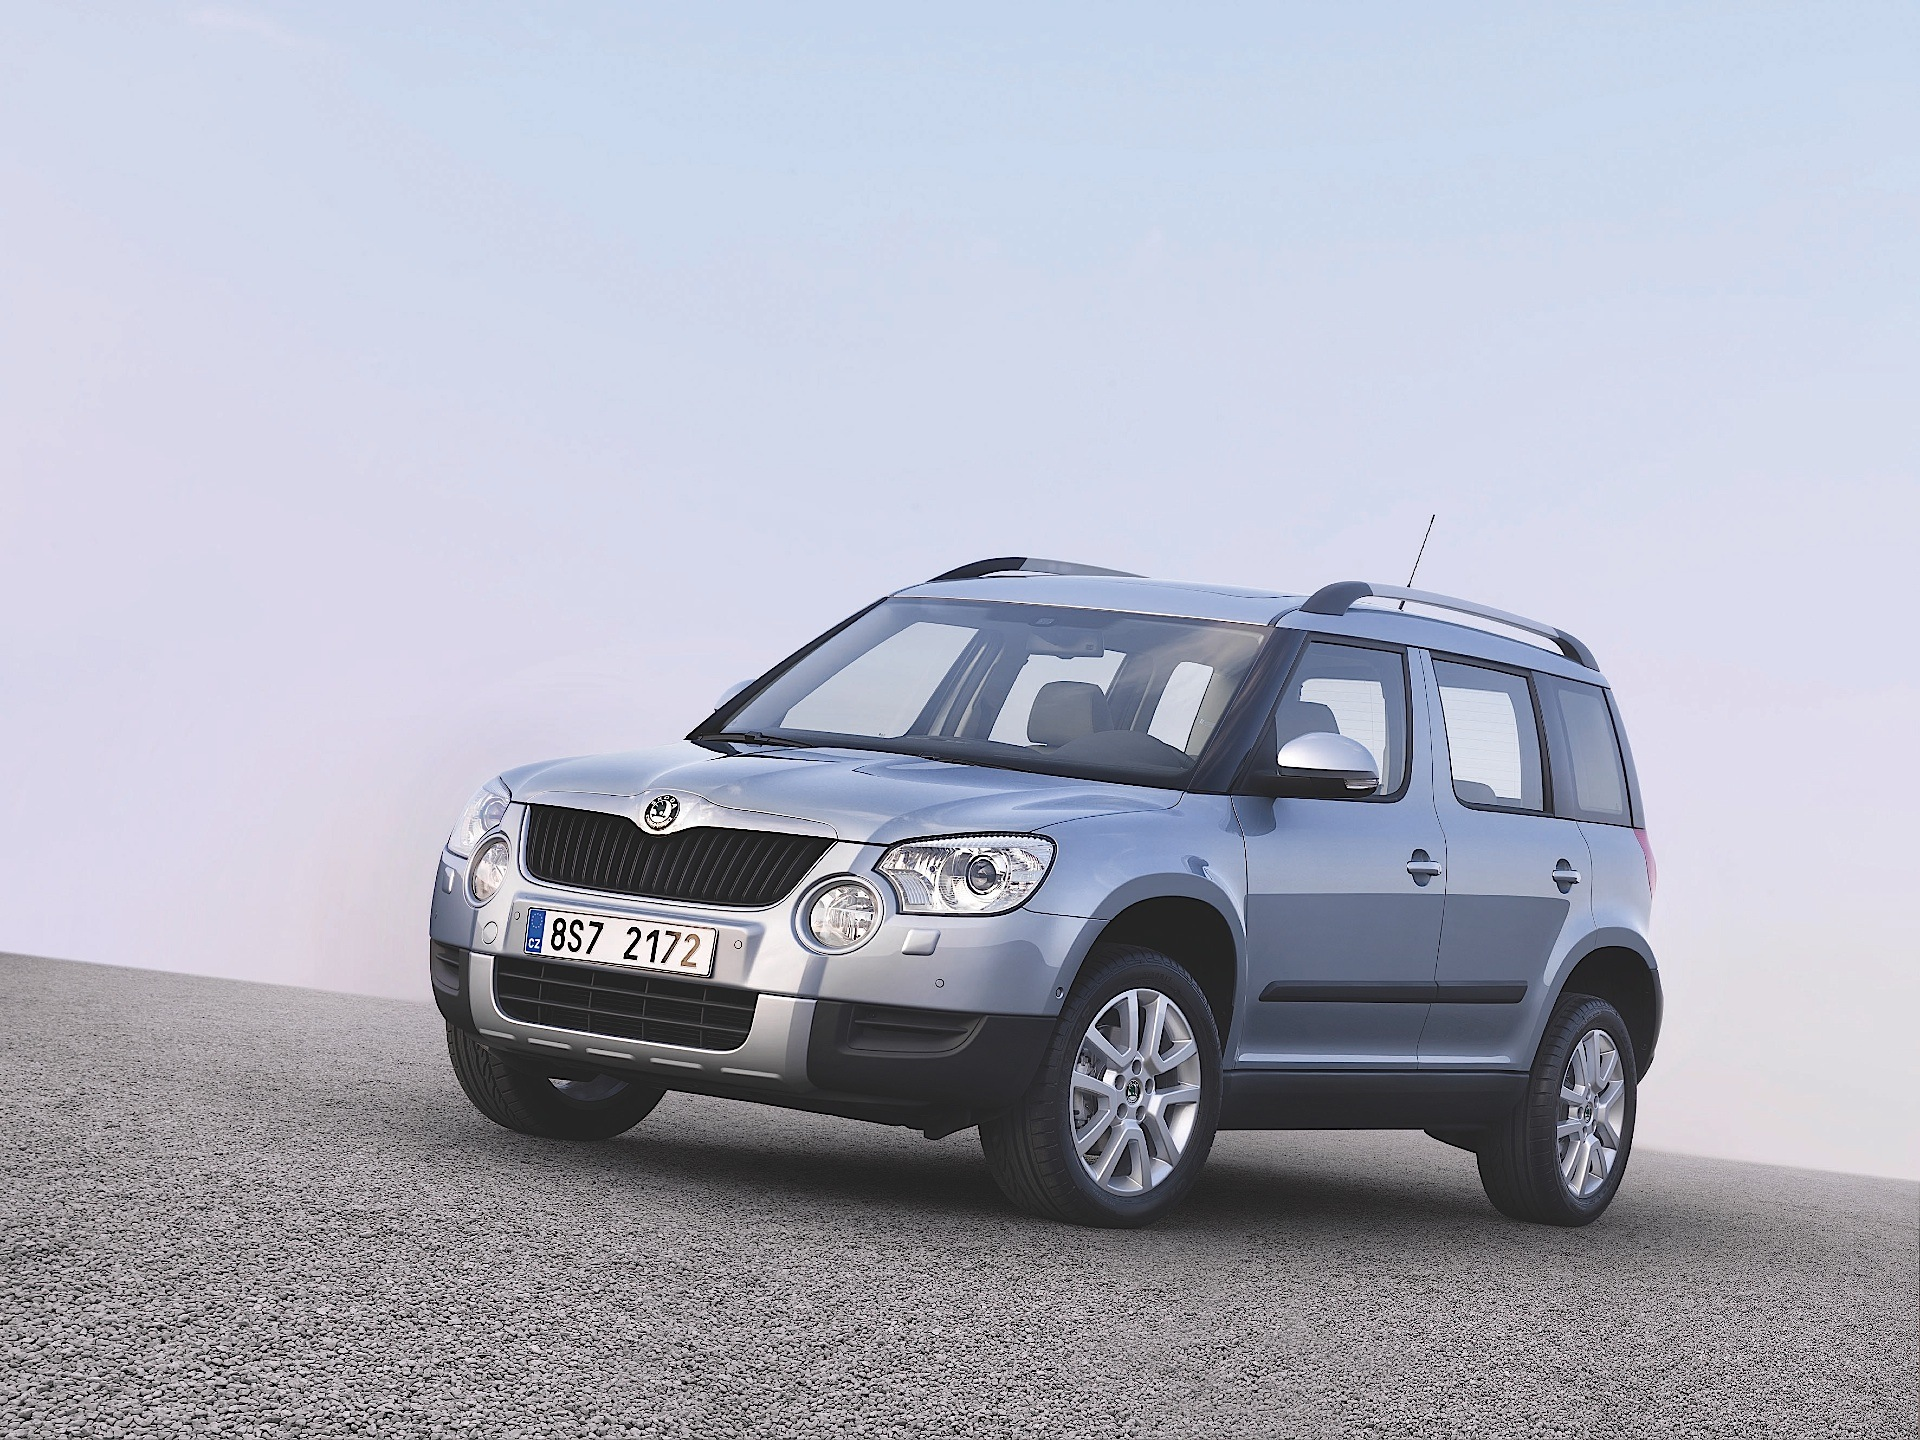 skoda yeti specs 2009 2010 2011 2012 2013 autoevolution. Black Bedroom Furniture Sets. Home Design Ideas